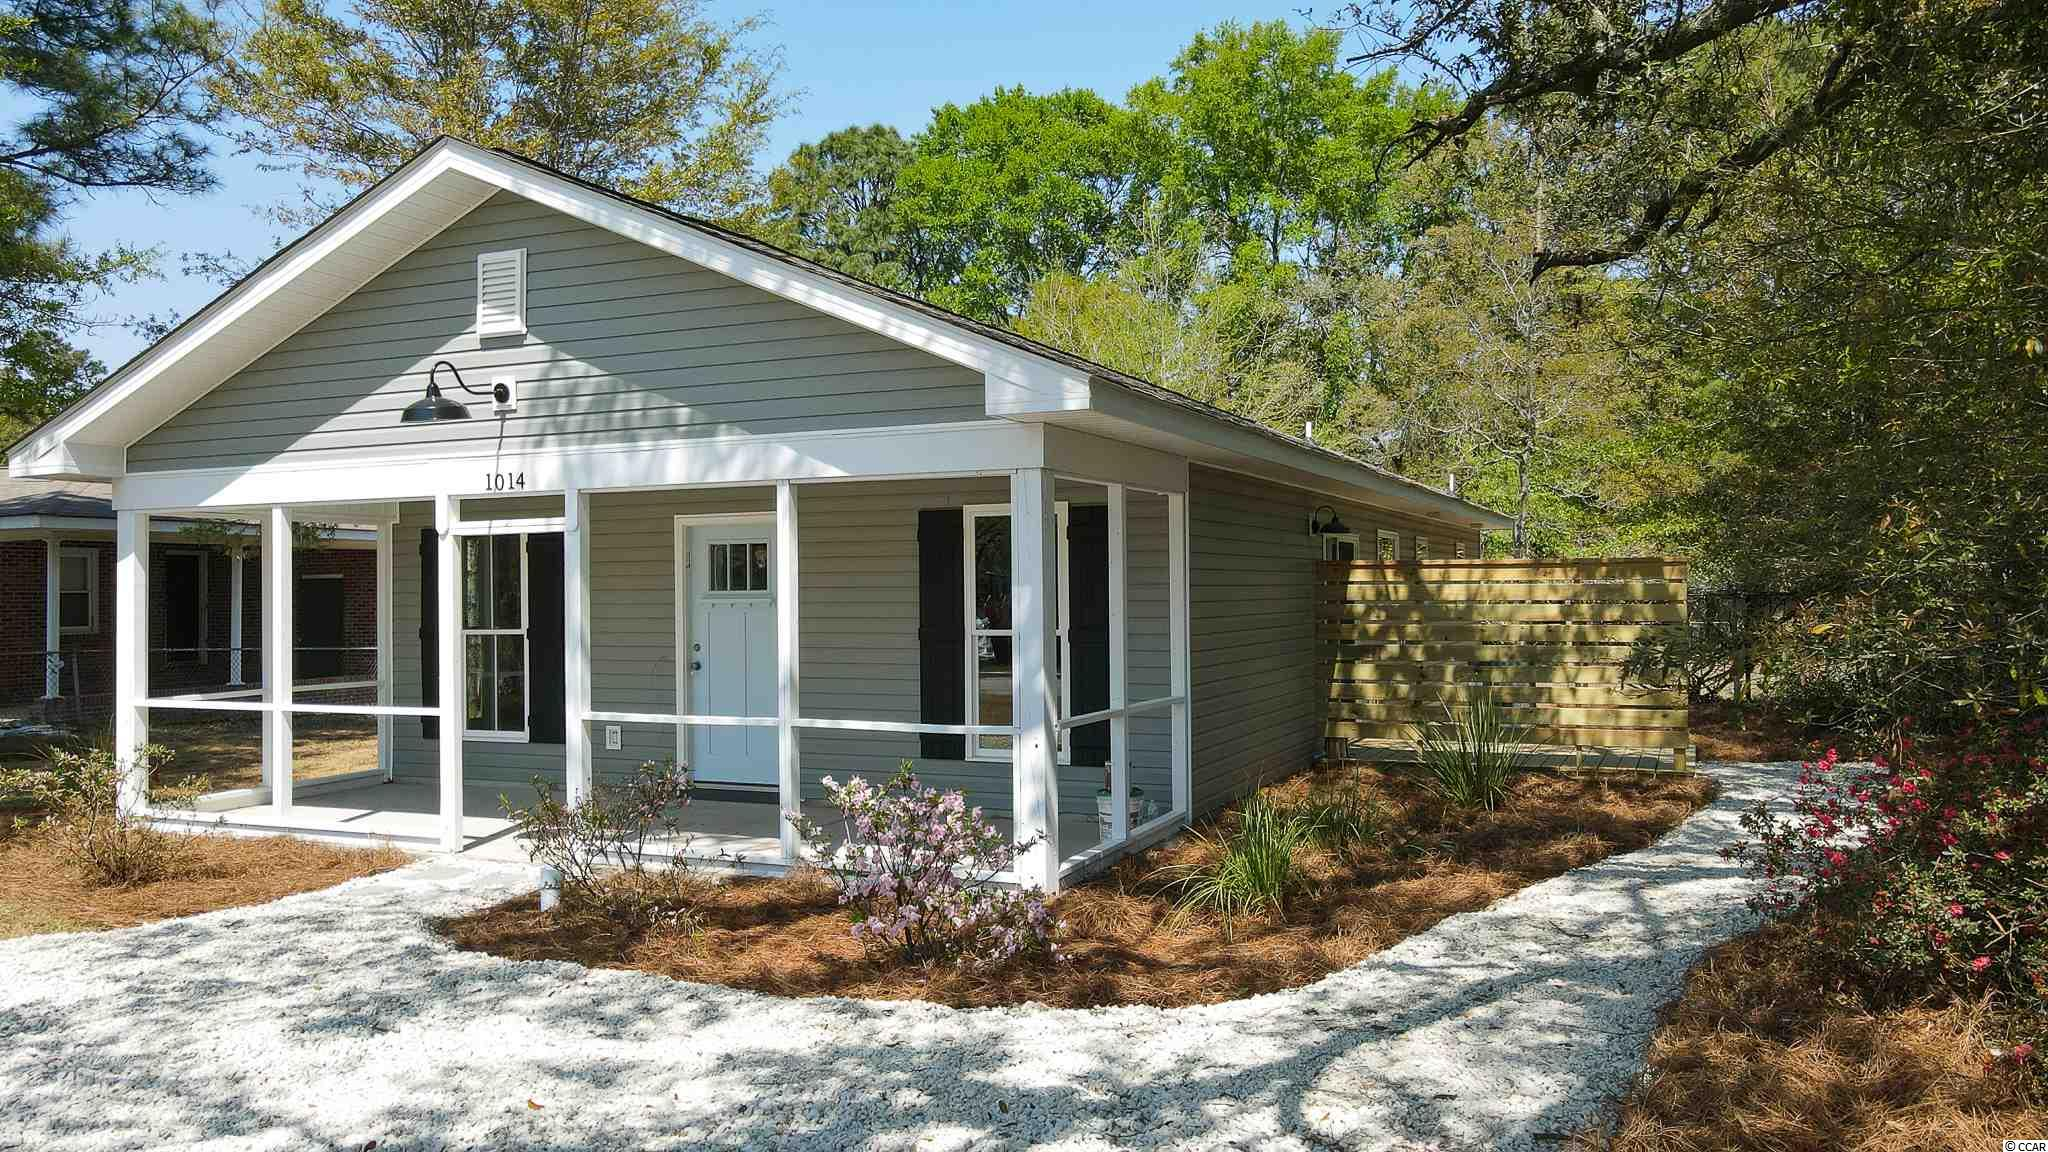 "Location is crucial when choosing the right home wouldn't you say? Tucked between HWY 17 and the Winyah Bay, you are located at an ""arms reach"" of  shopping, restaurants, hospitals, harbors, three airports, two technical colleges and three universities. 10 min from Georgetown, 45 min from our nearest metropolitan areas in either direction, south to Charleston or north to Myrtle Beach.  This home-site was previously used as a fertile plot of land to grow muscadine grapes. We plan on incorporating that same mature grape vine into the back yard of the home! Shiplap accent walls, GE Appliance package, large tubs, cathedral ceilings,spacious 24' x 8' front porch, and more. Call today!!"